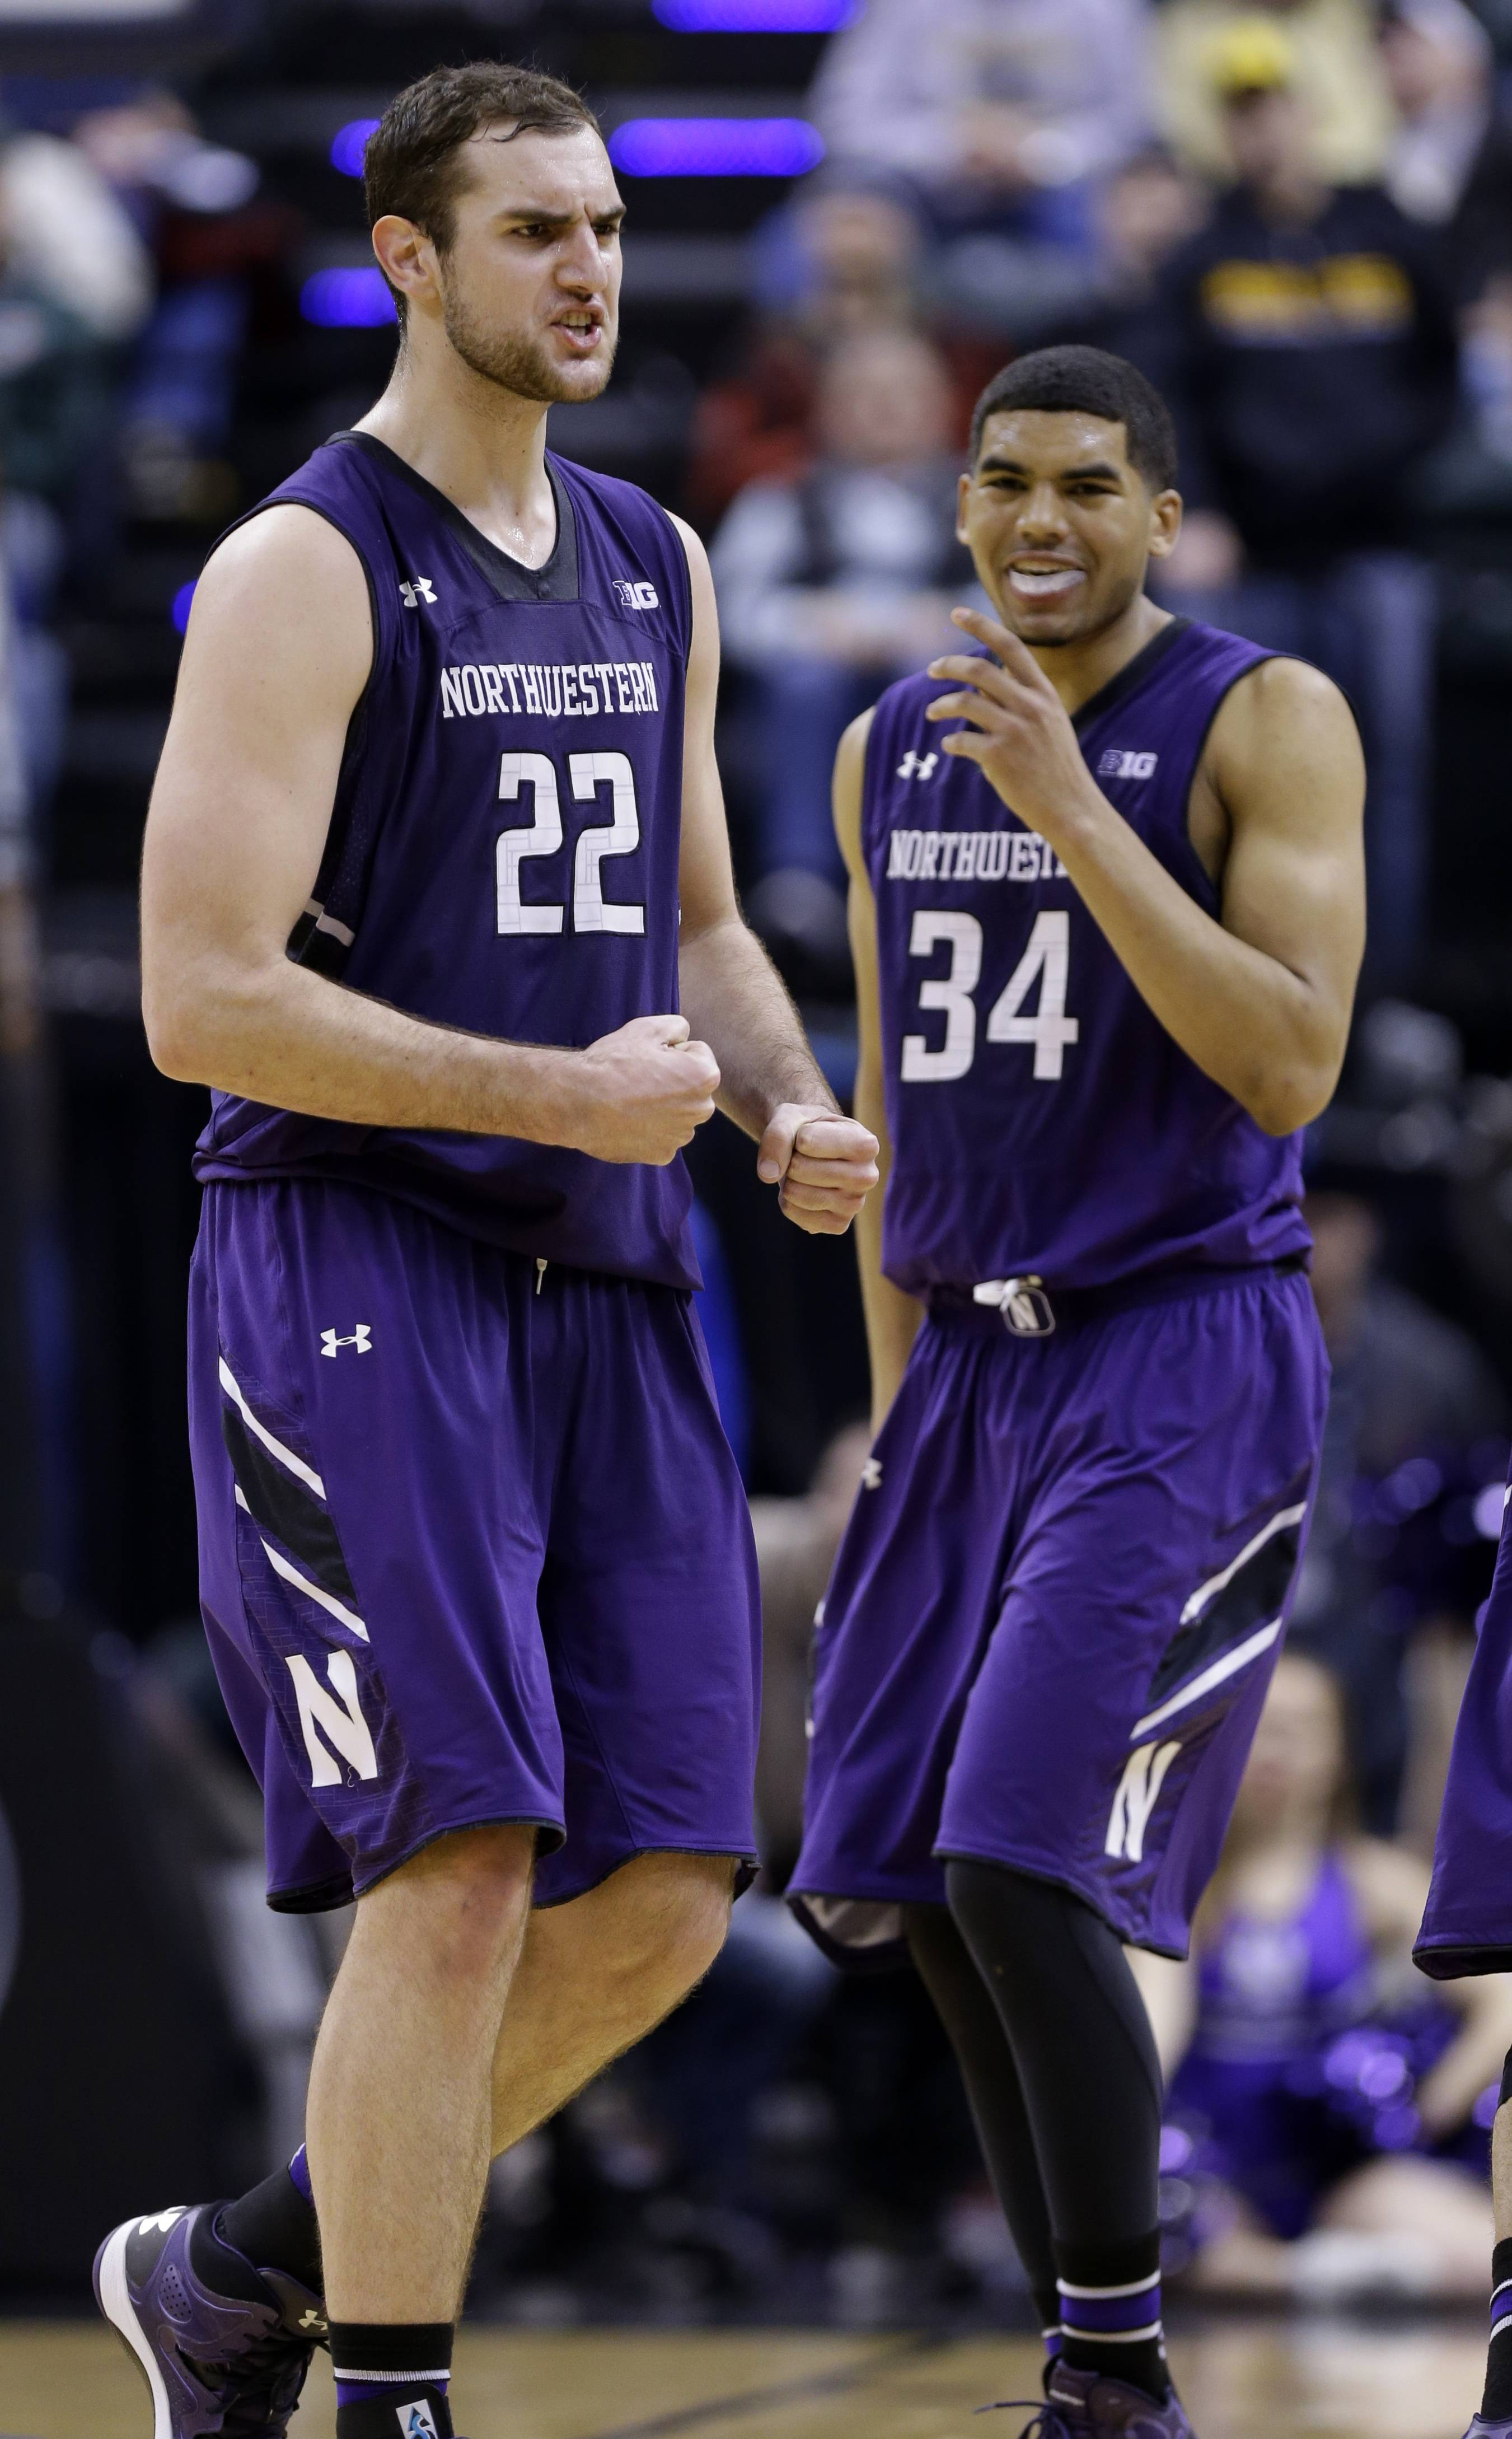 Northwestern center Alex Olah (22) pumps his fists after making free throws in the second half of an NCAA college basketball game against Iowa in the first round of the Big Ten Conference tournament, Thursday, March 13, 2014, in Indianapolis. At right is Northwestern guard/forward Sanjay Lumpkin. Northwestern won 67-62.